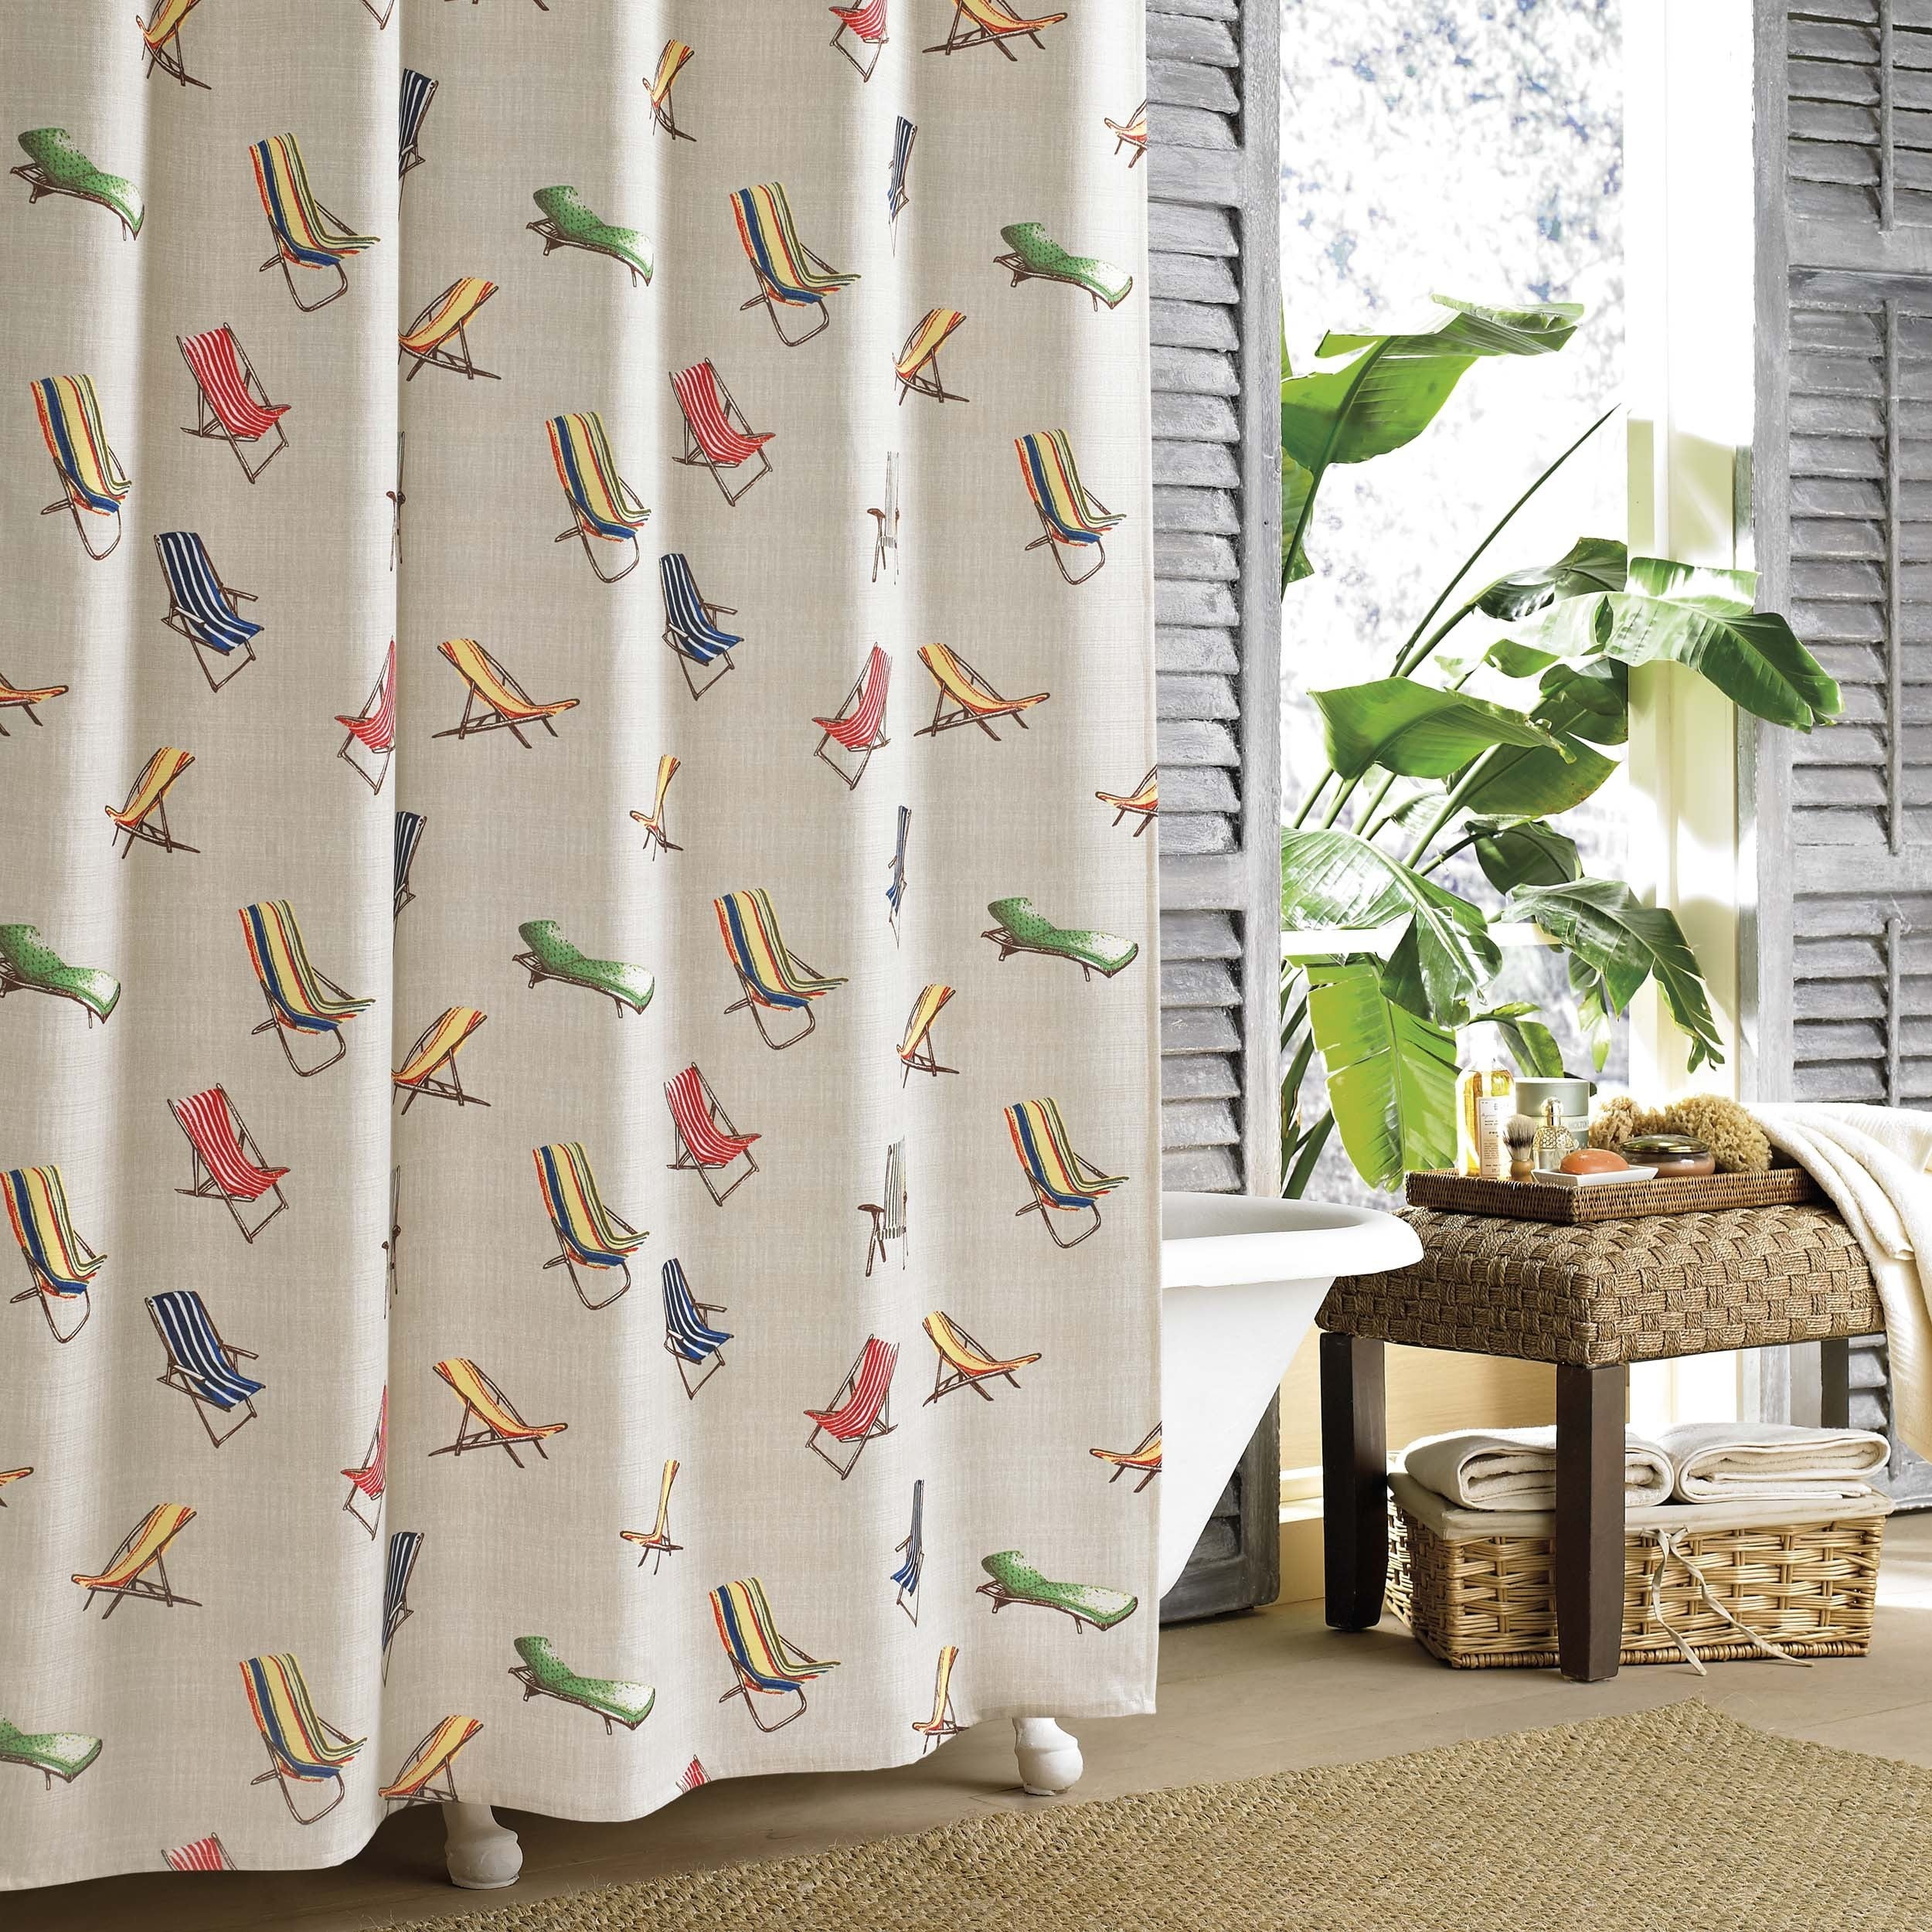 Tommy Bahama Retro Beach Chairs Shower Curtain Free Shipping Today